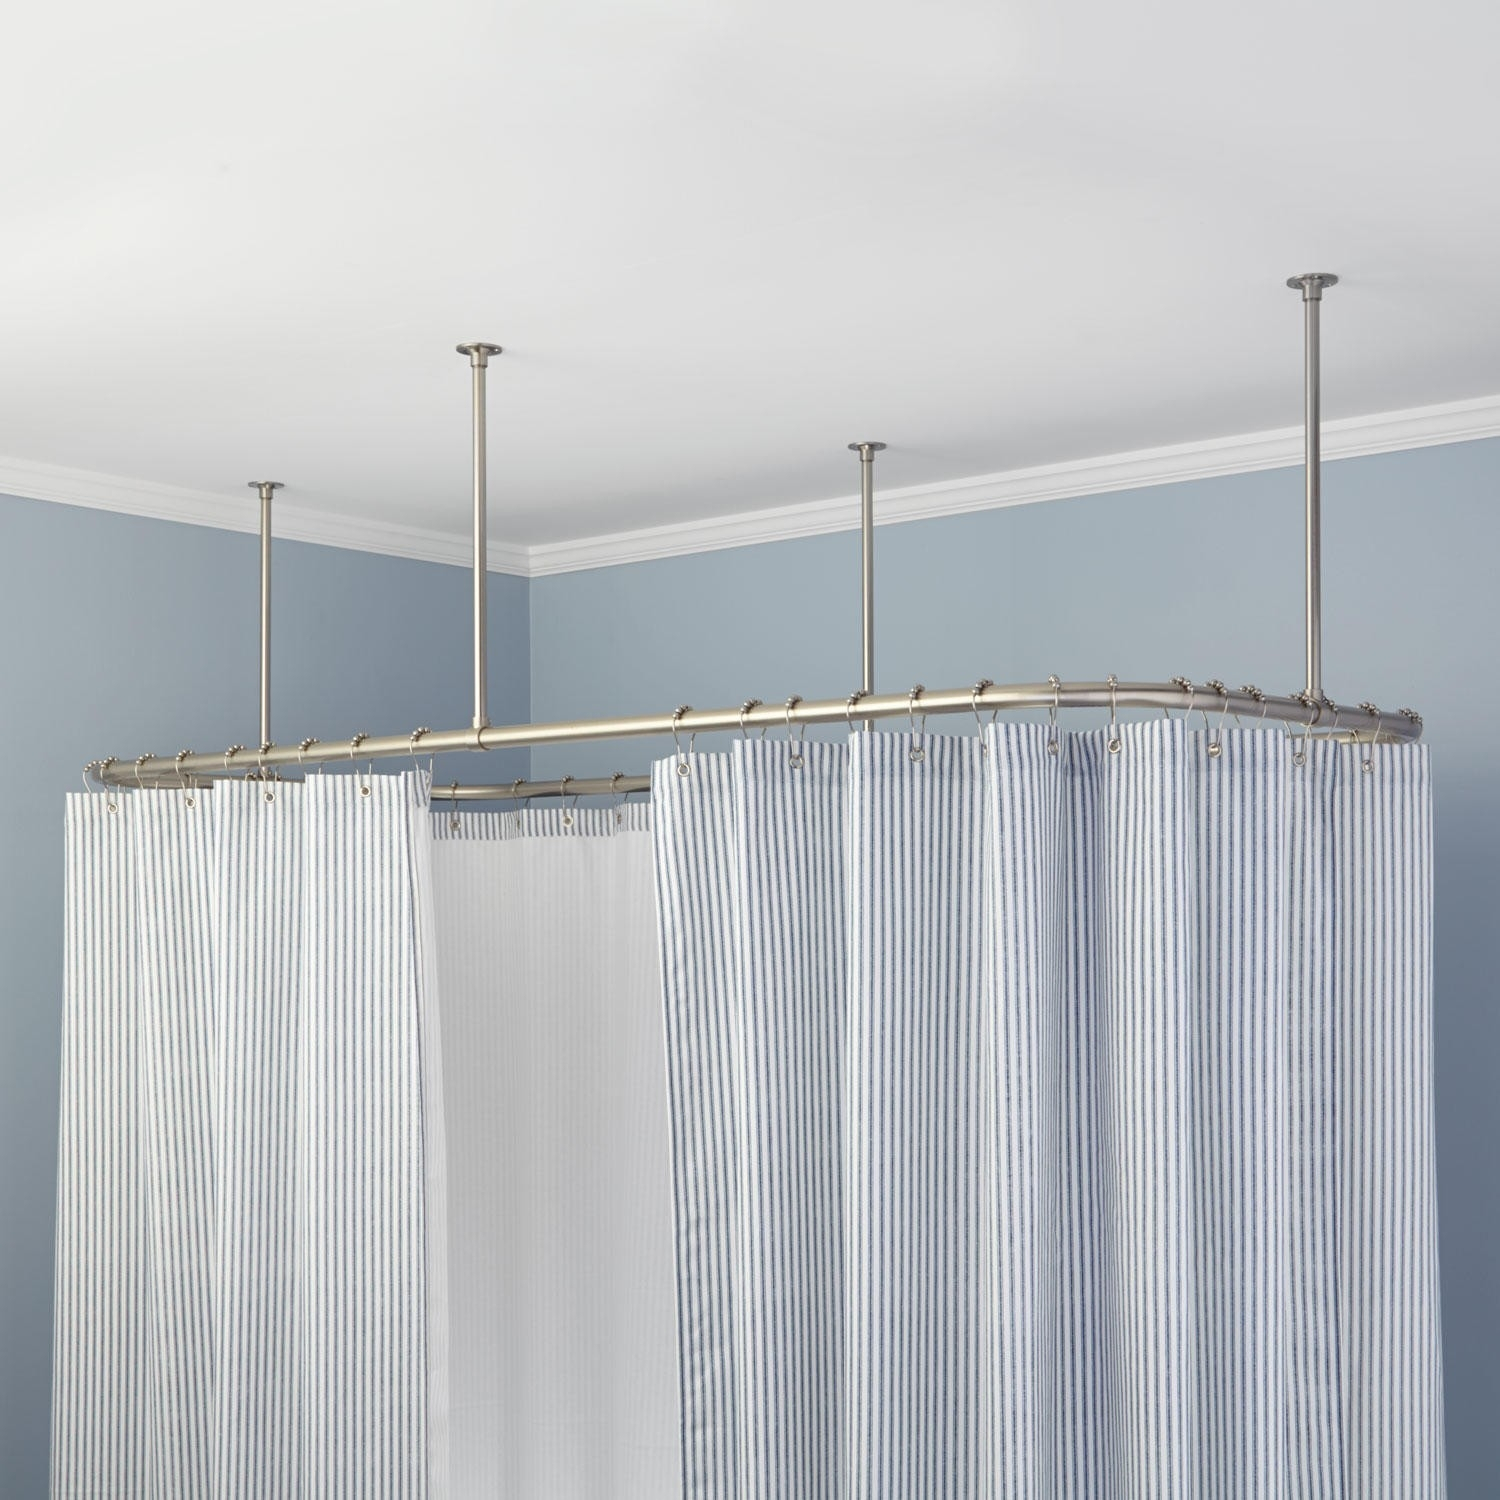 Oval Shower Curtain Rod Ceiling Mount.Oval Shower Curtain Rod Ceiling Mount Shower Curtains Ideas